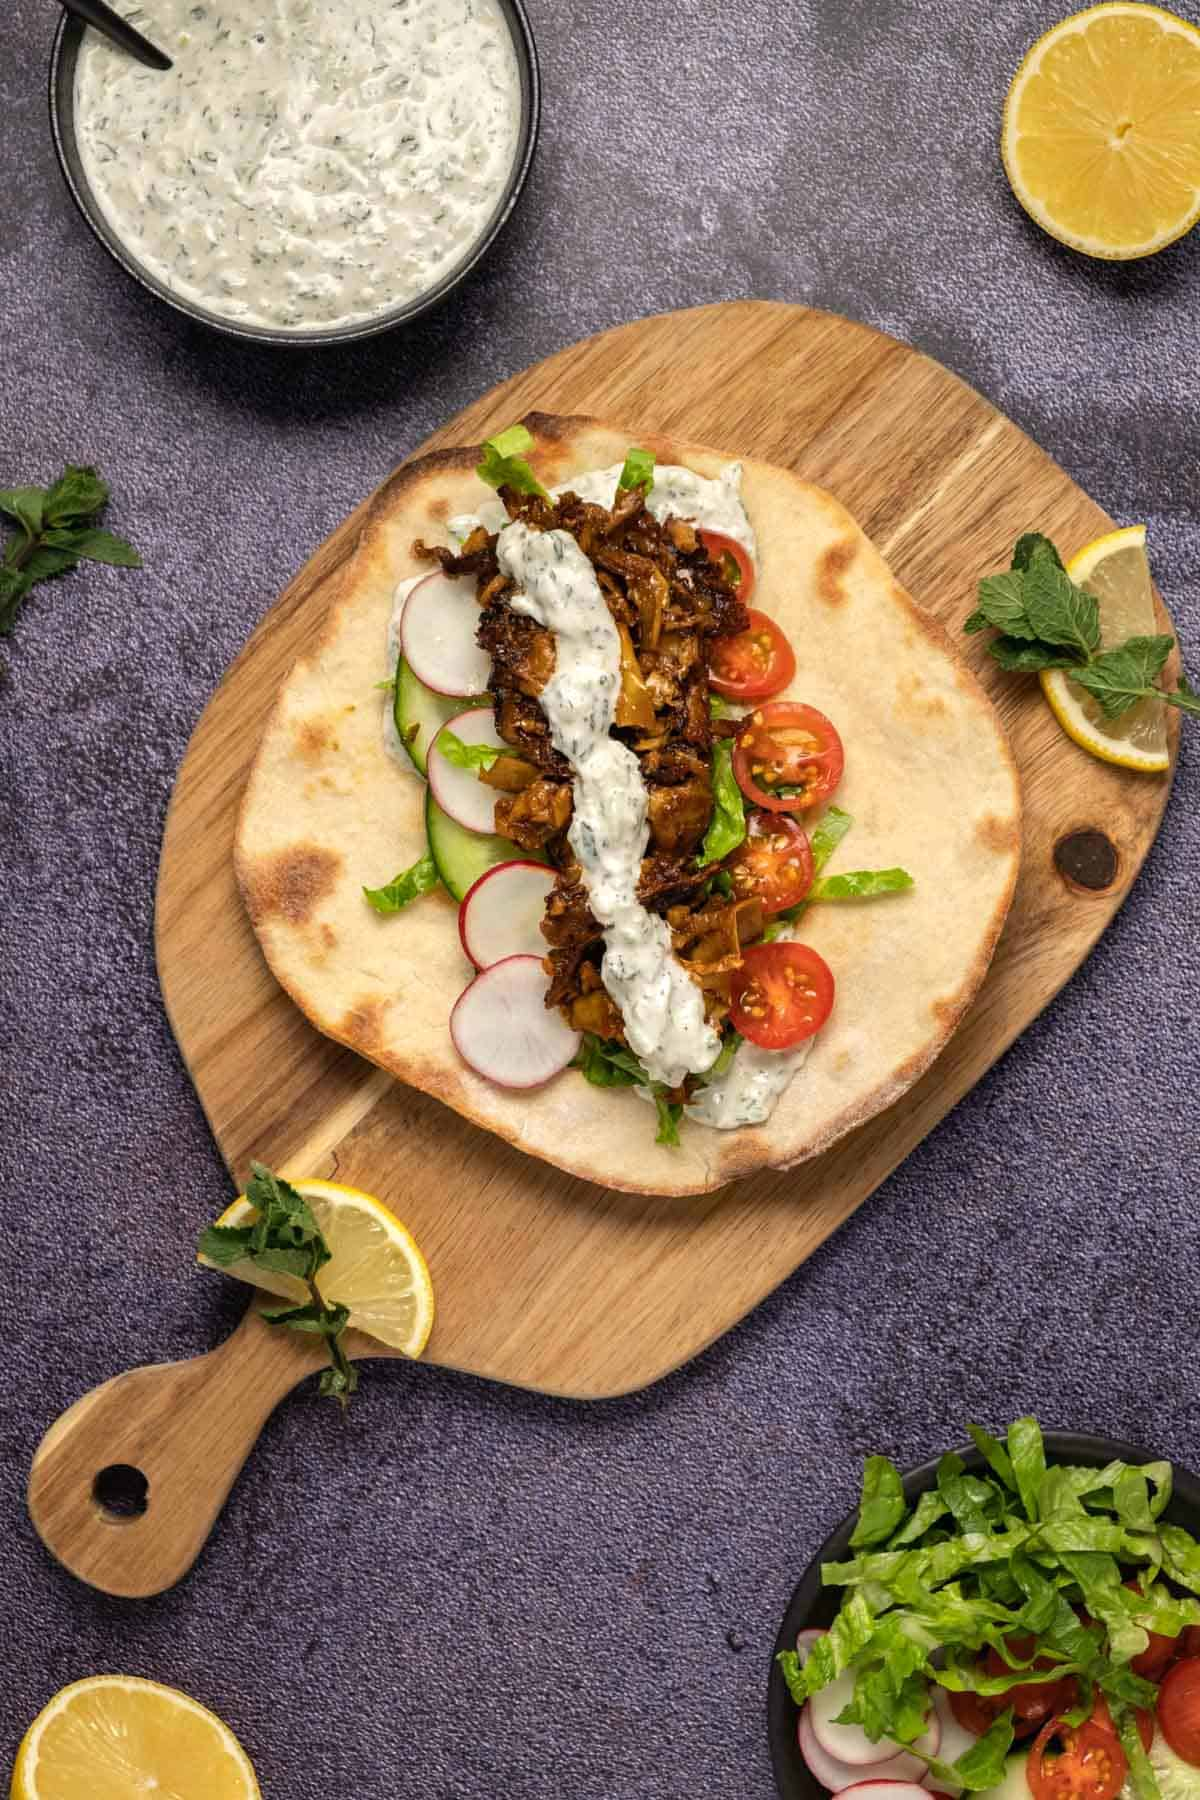 Pita bread topped with fillings and tzatziki on a wooden board.